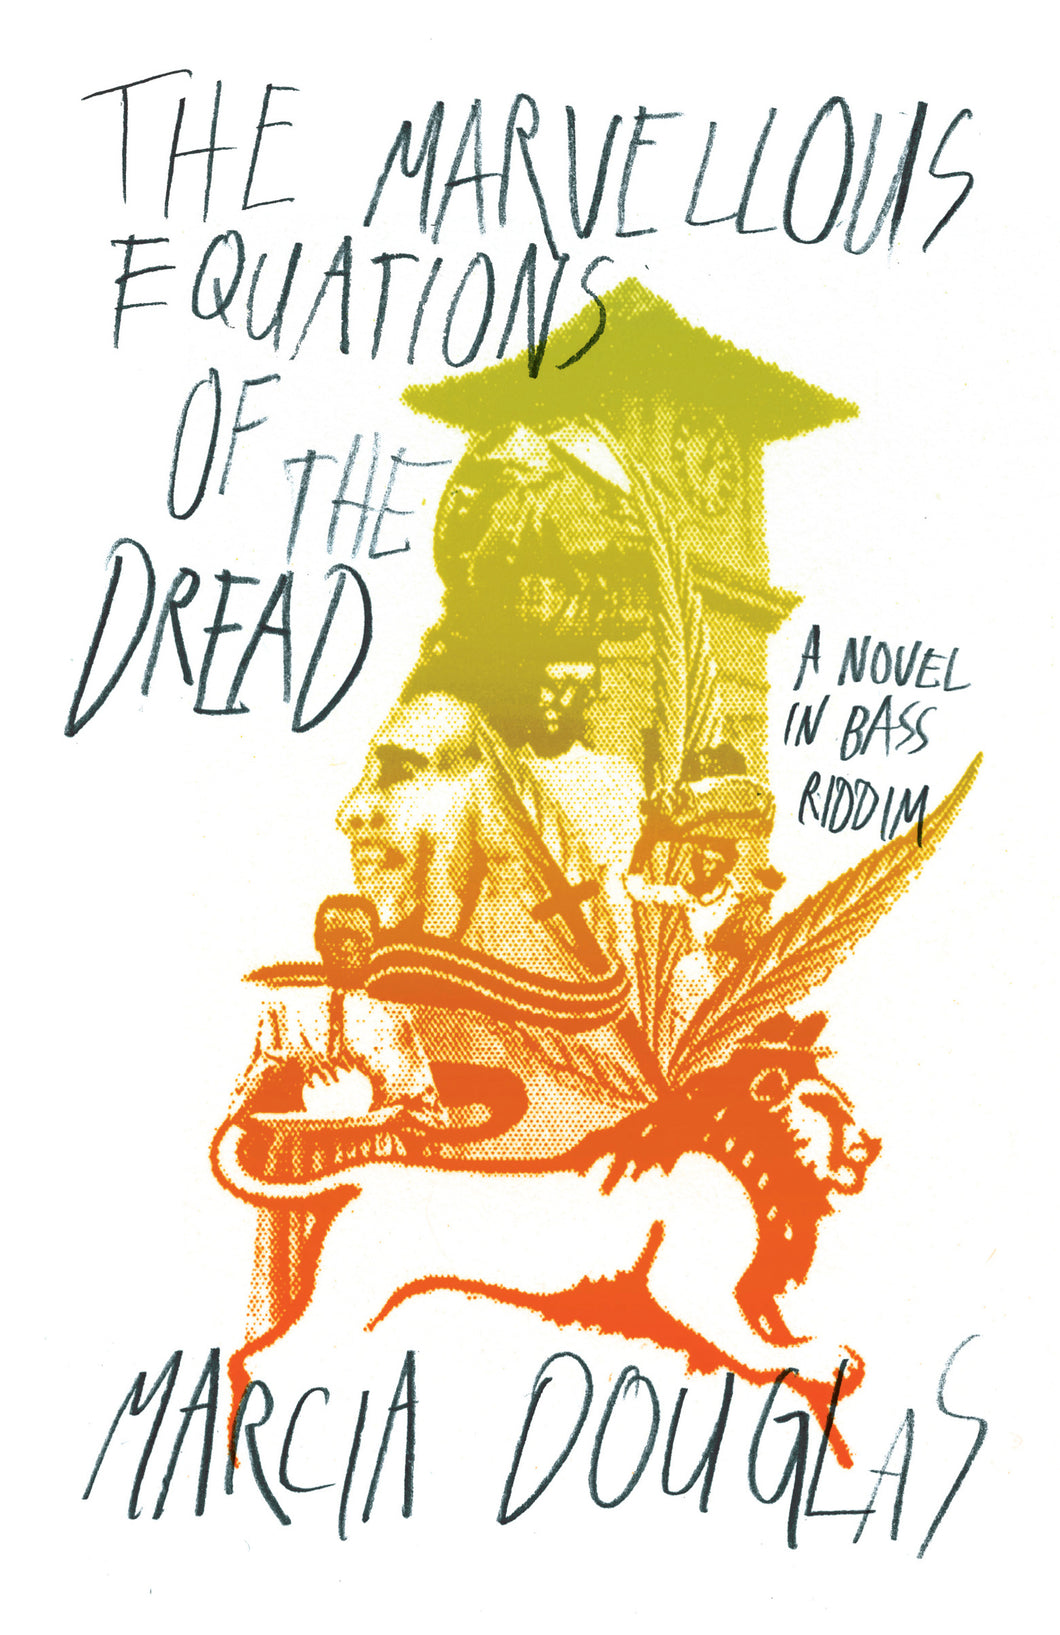 The Marvellous Equations of the Dread by Marcia Douglas